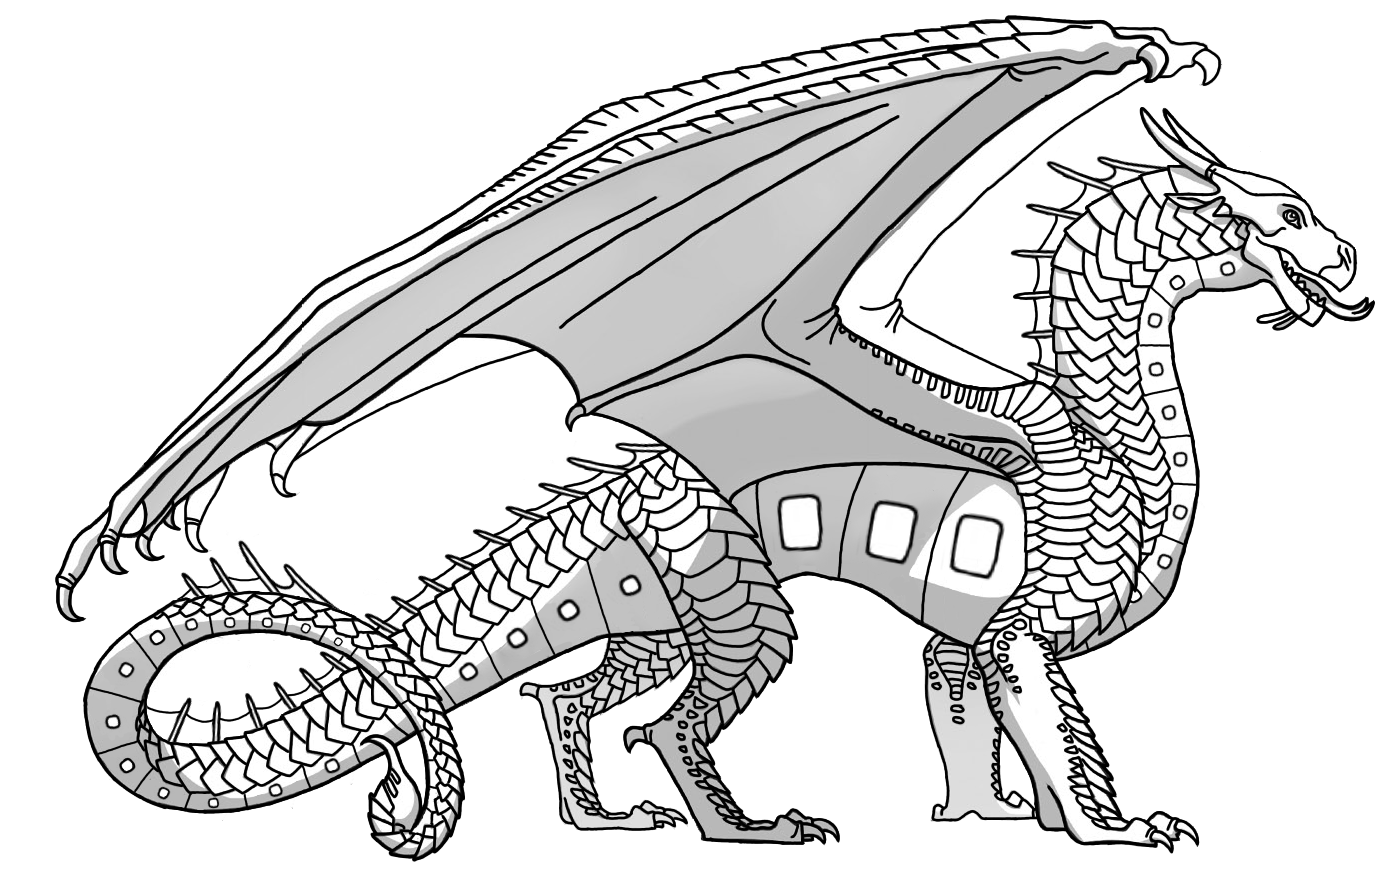 Wings Of Fire Ideas Hybrid Appearances Wings Of Fire Wings Of Fire Dragons Fire Dragon